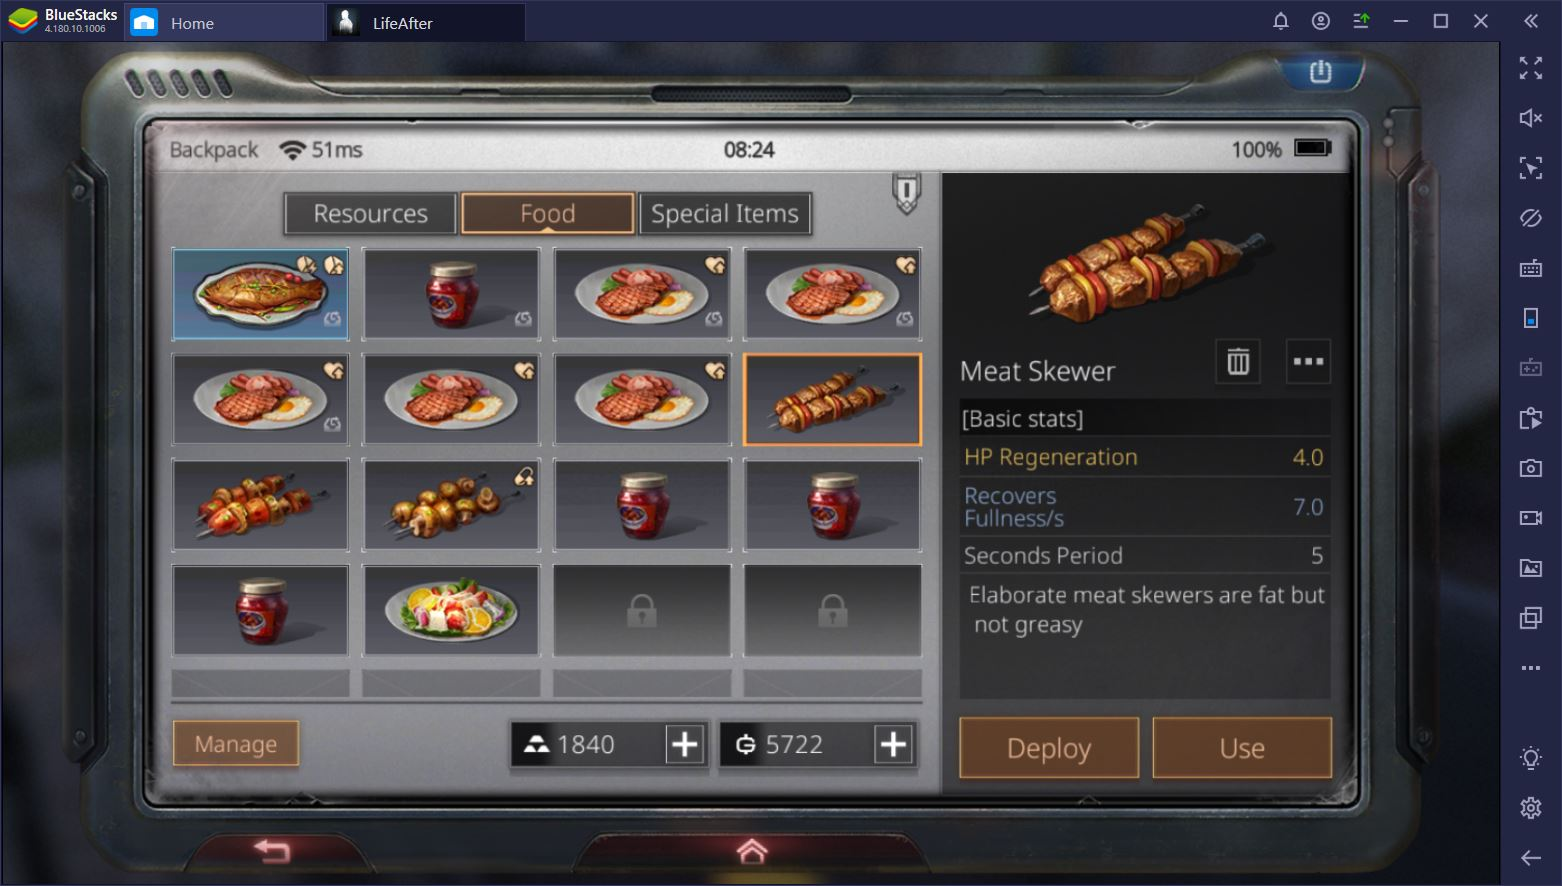 LifeAfter on PC: The Complete Guide to Food